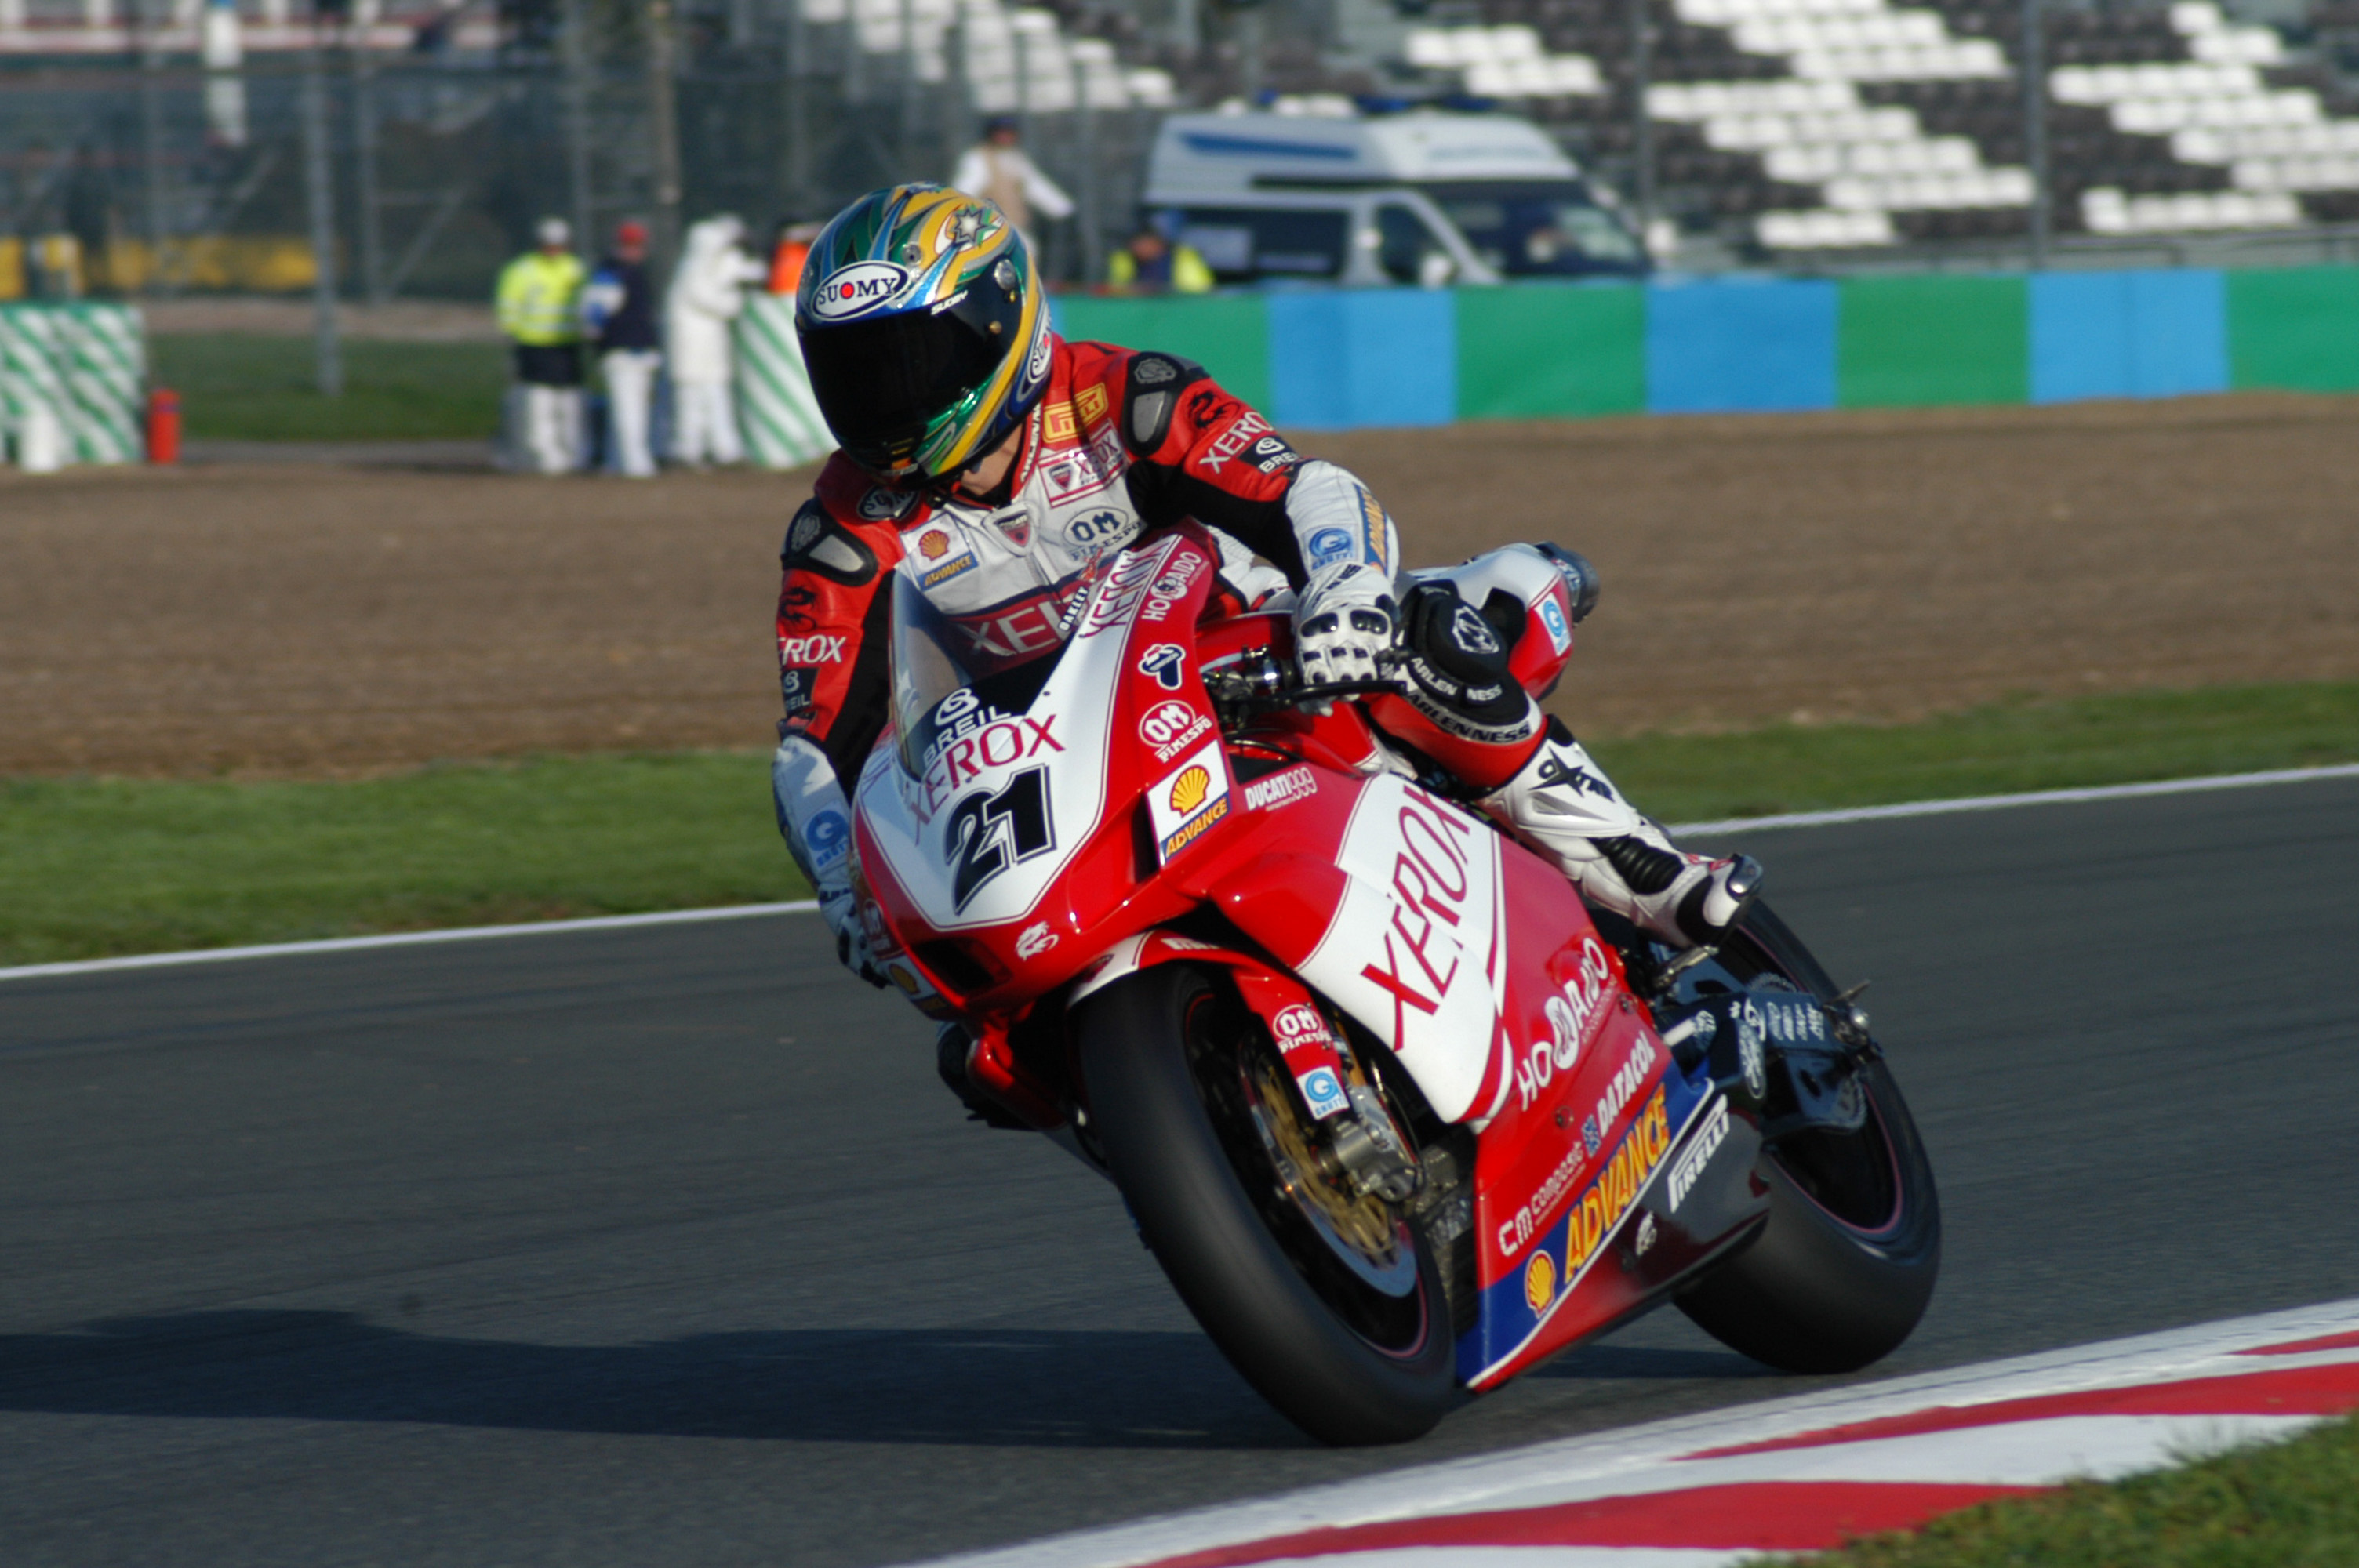 FileTroy Bayliss SBK 2006